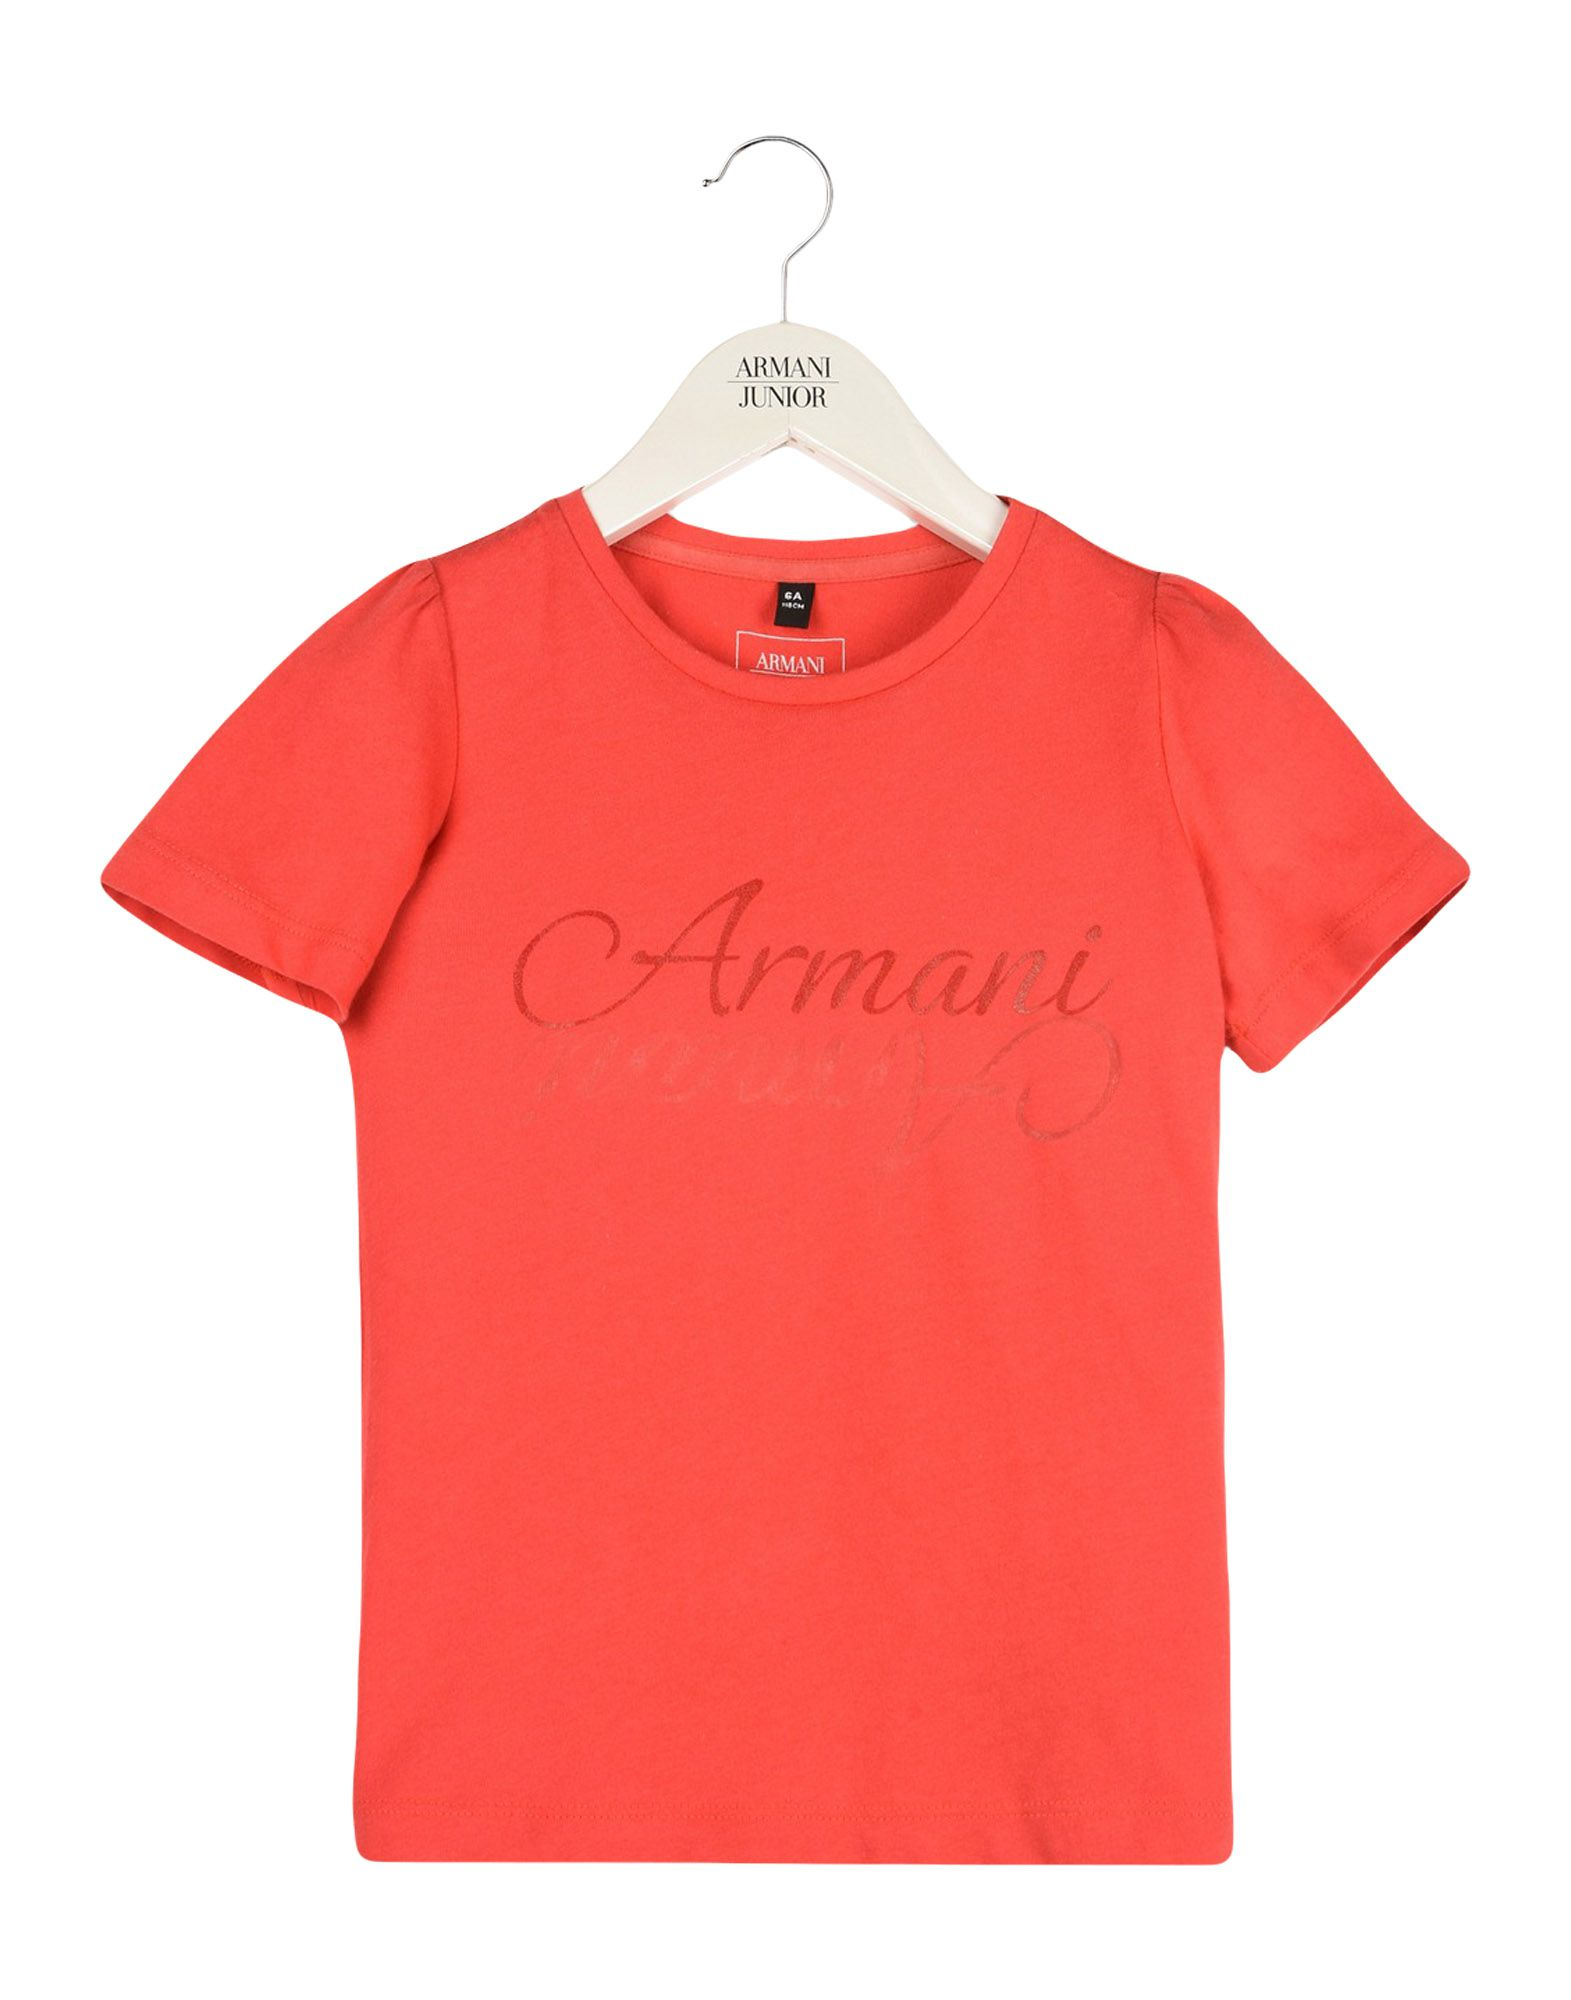 ARMANI JUNIOR T-Shirt in Red